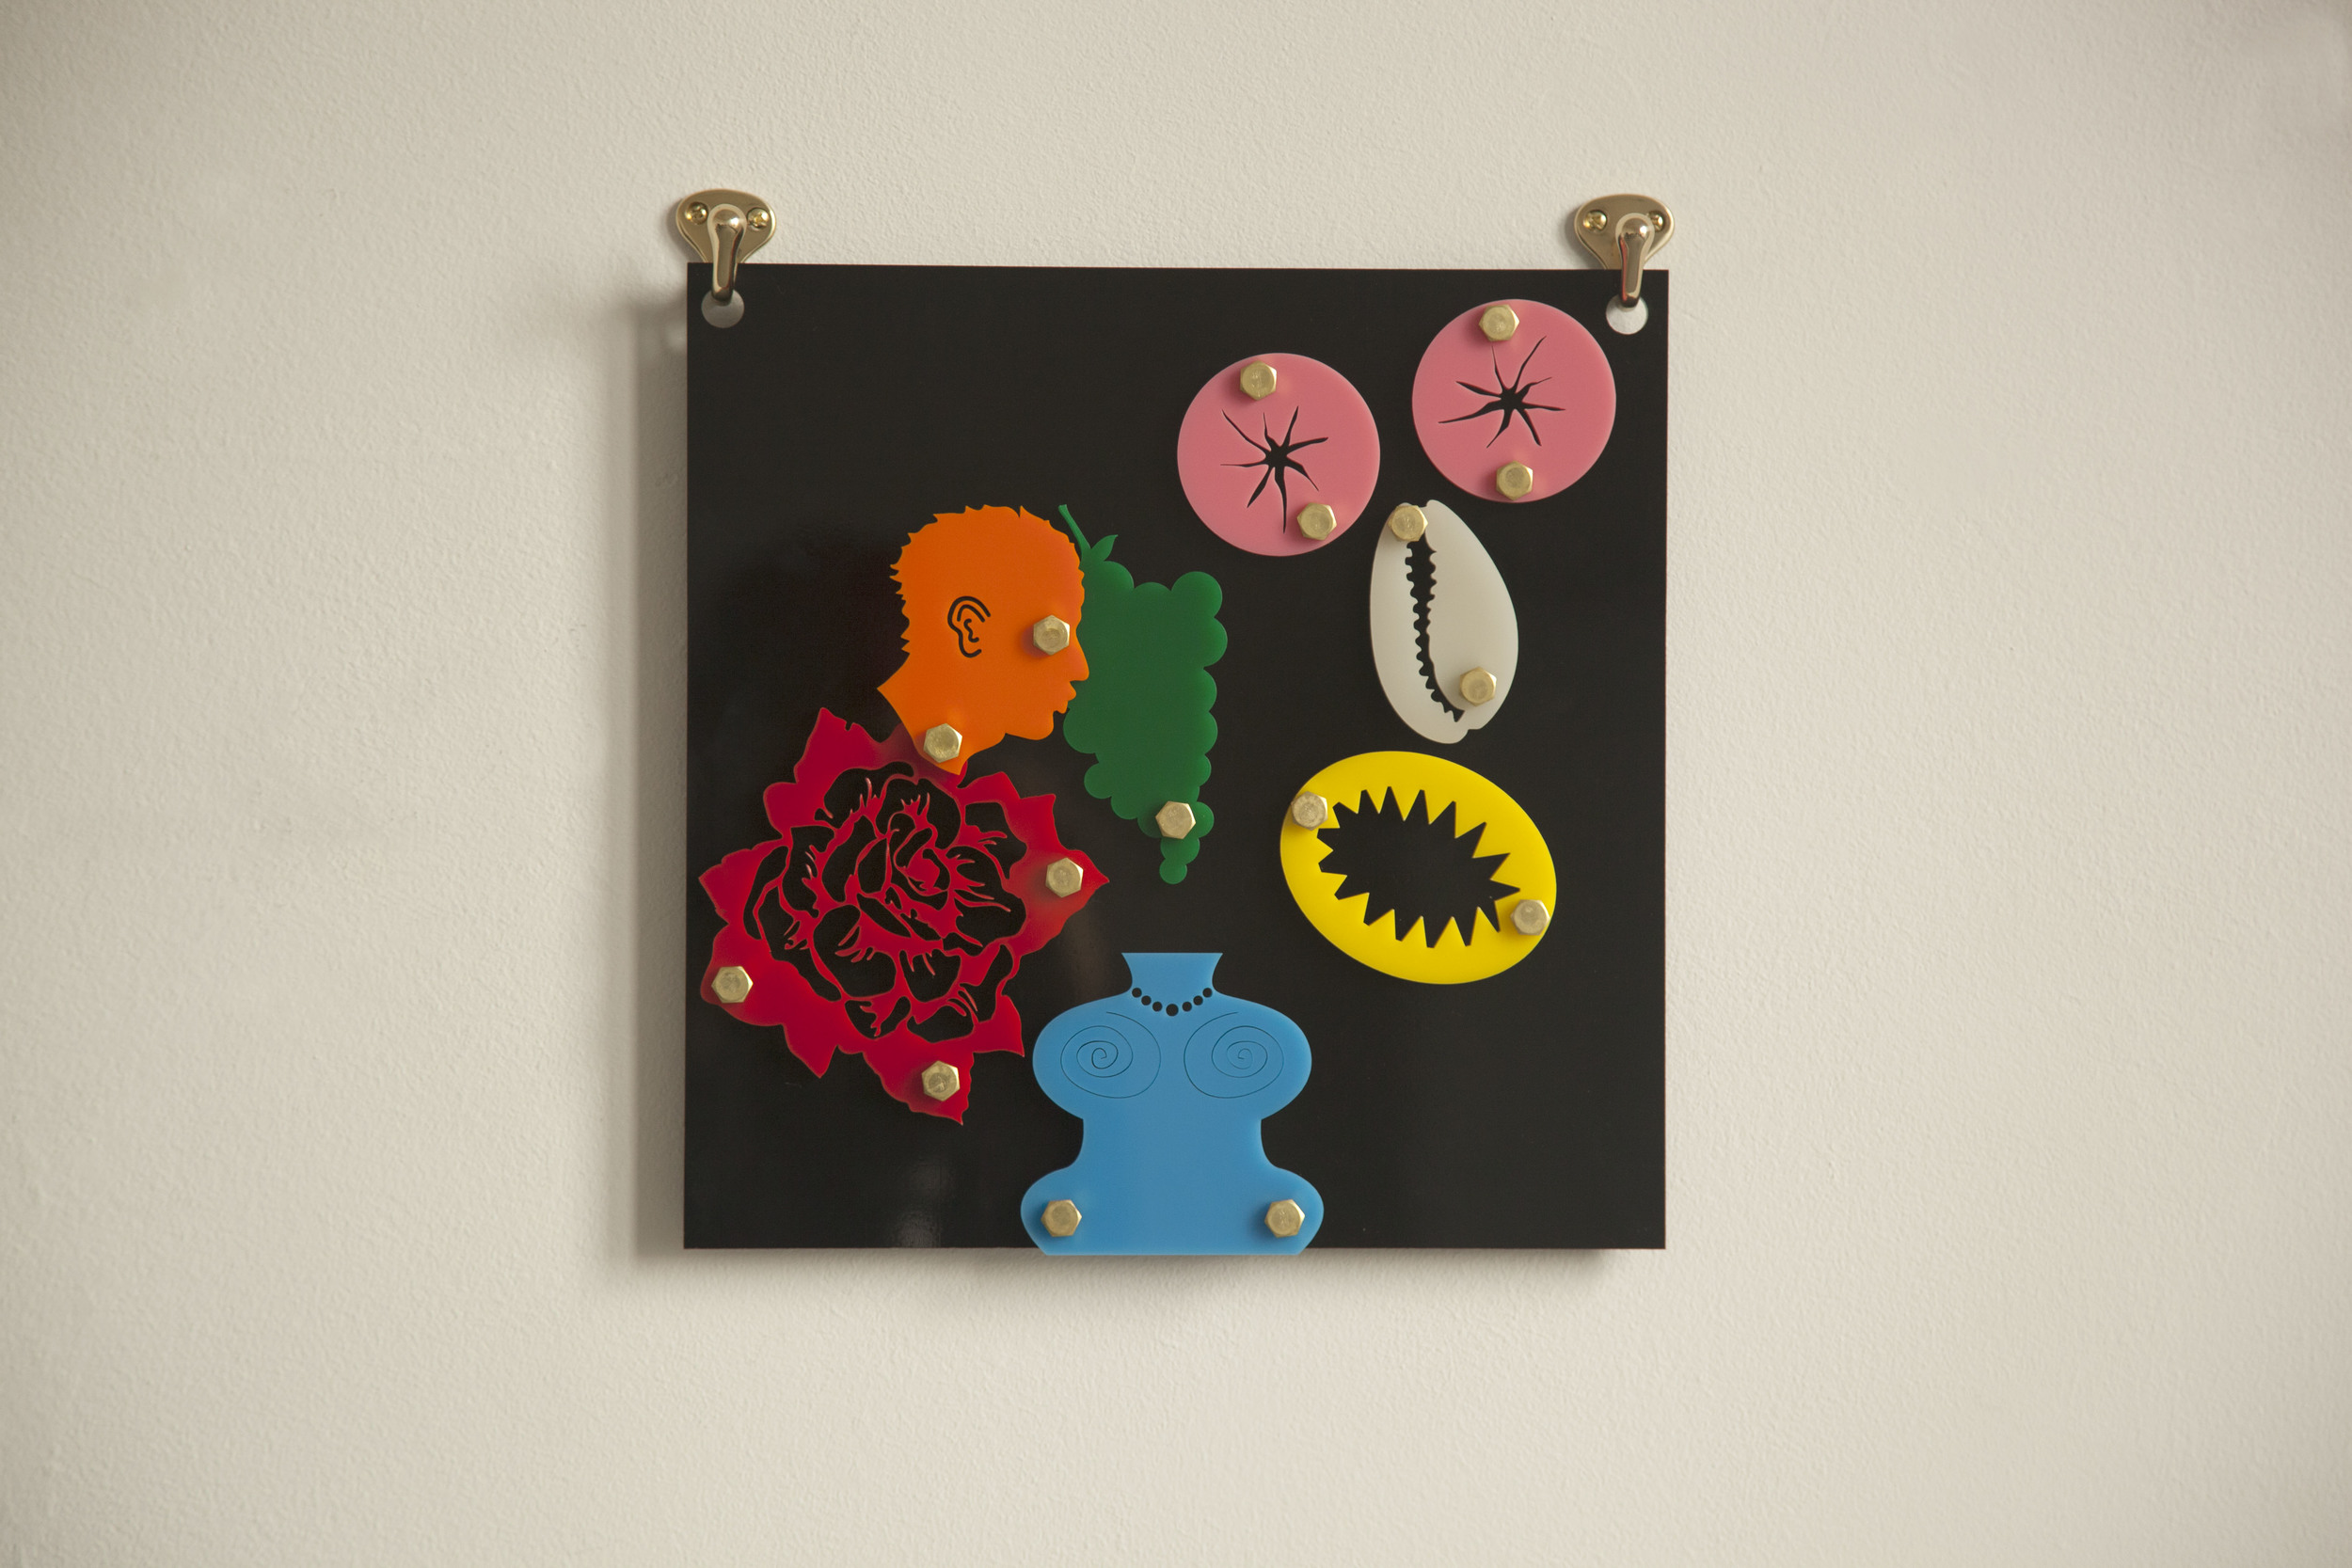 Googly (Blackamoors Collage 2), 2014 Plexiglass and brass 12 x 12 inches